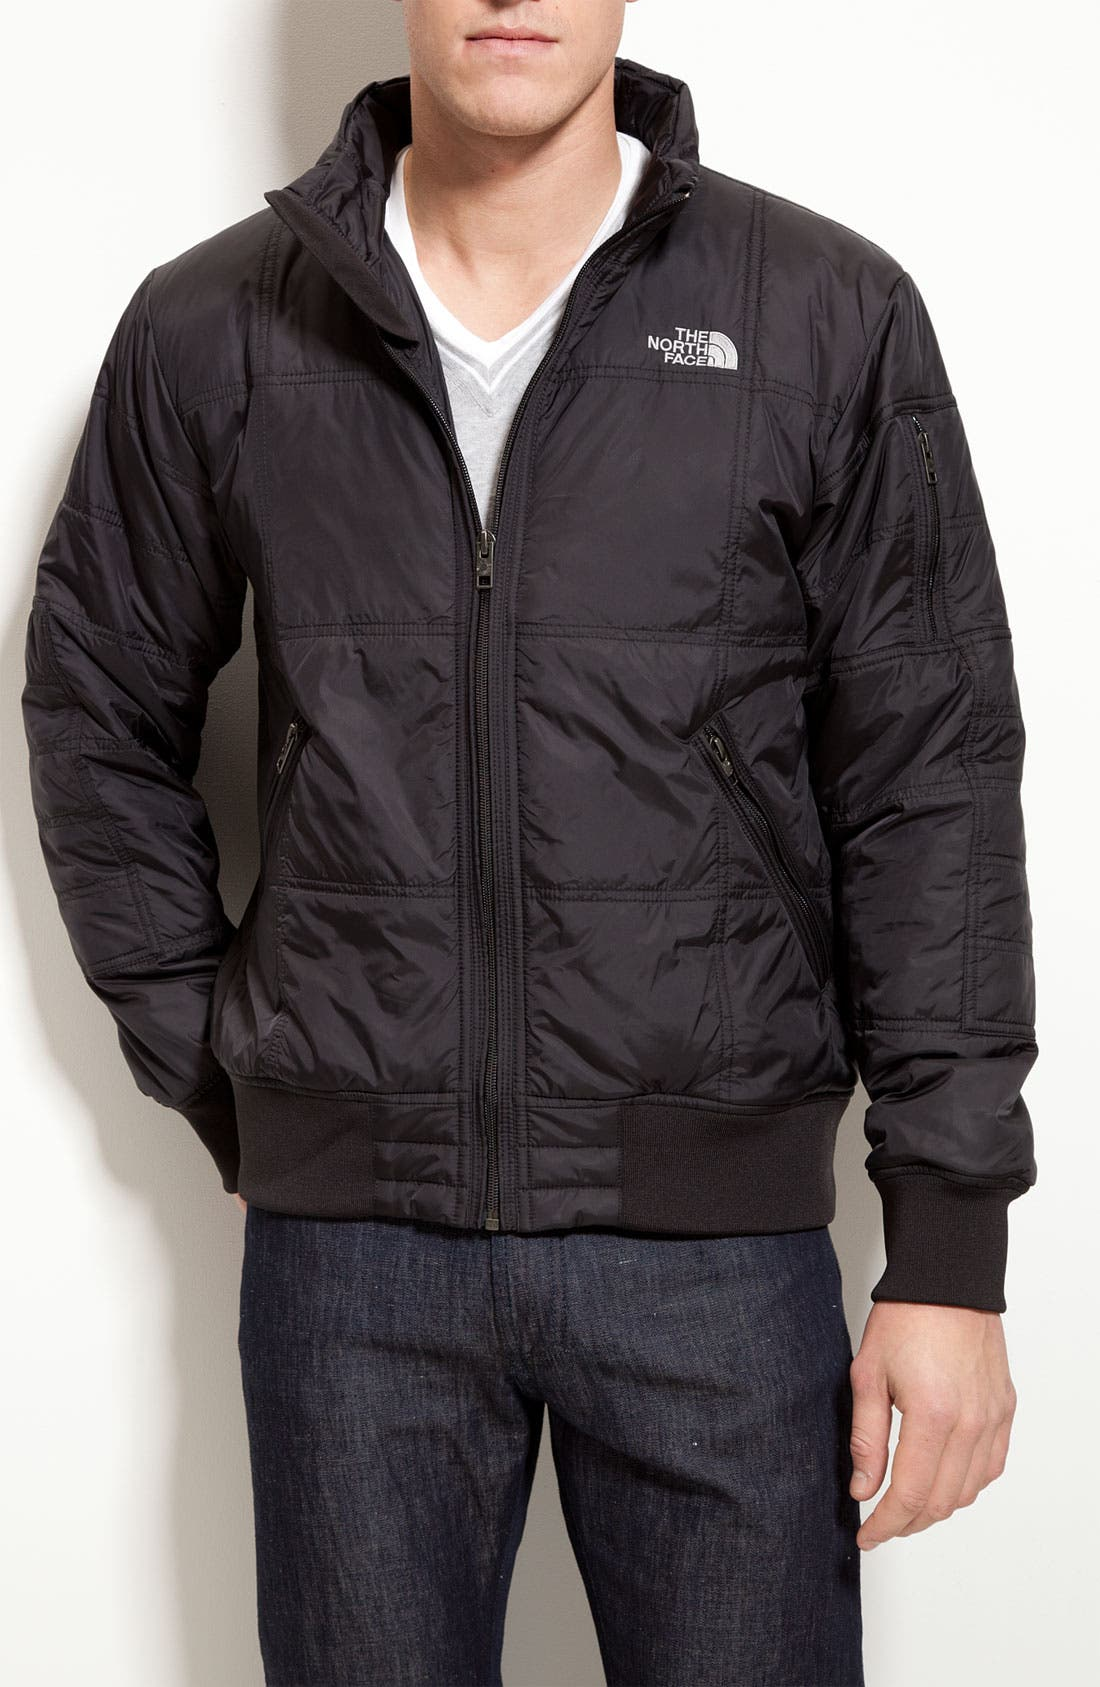 Main Image - The North Face 'Boss' Quilted Bomber Jacket